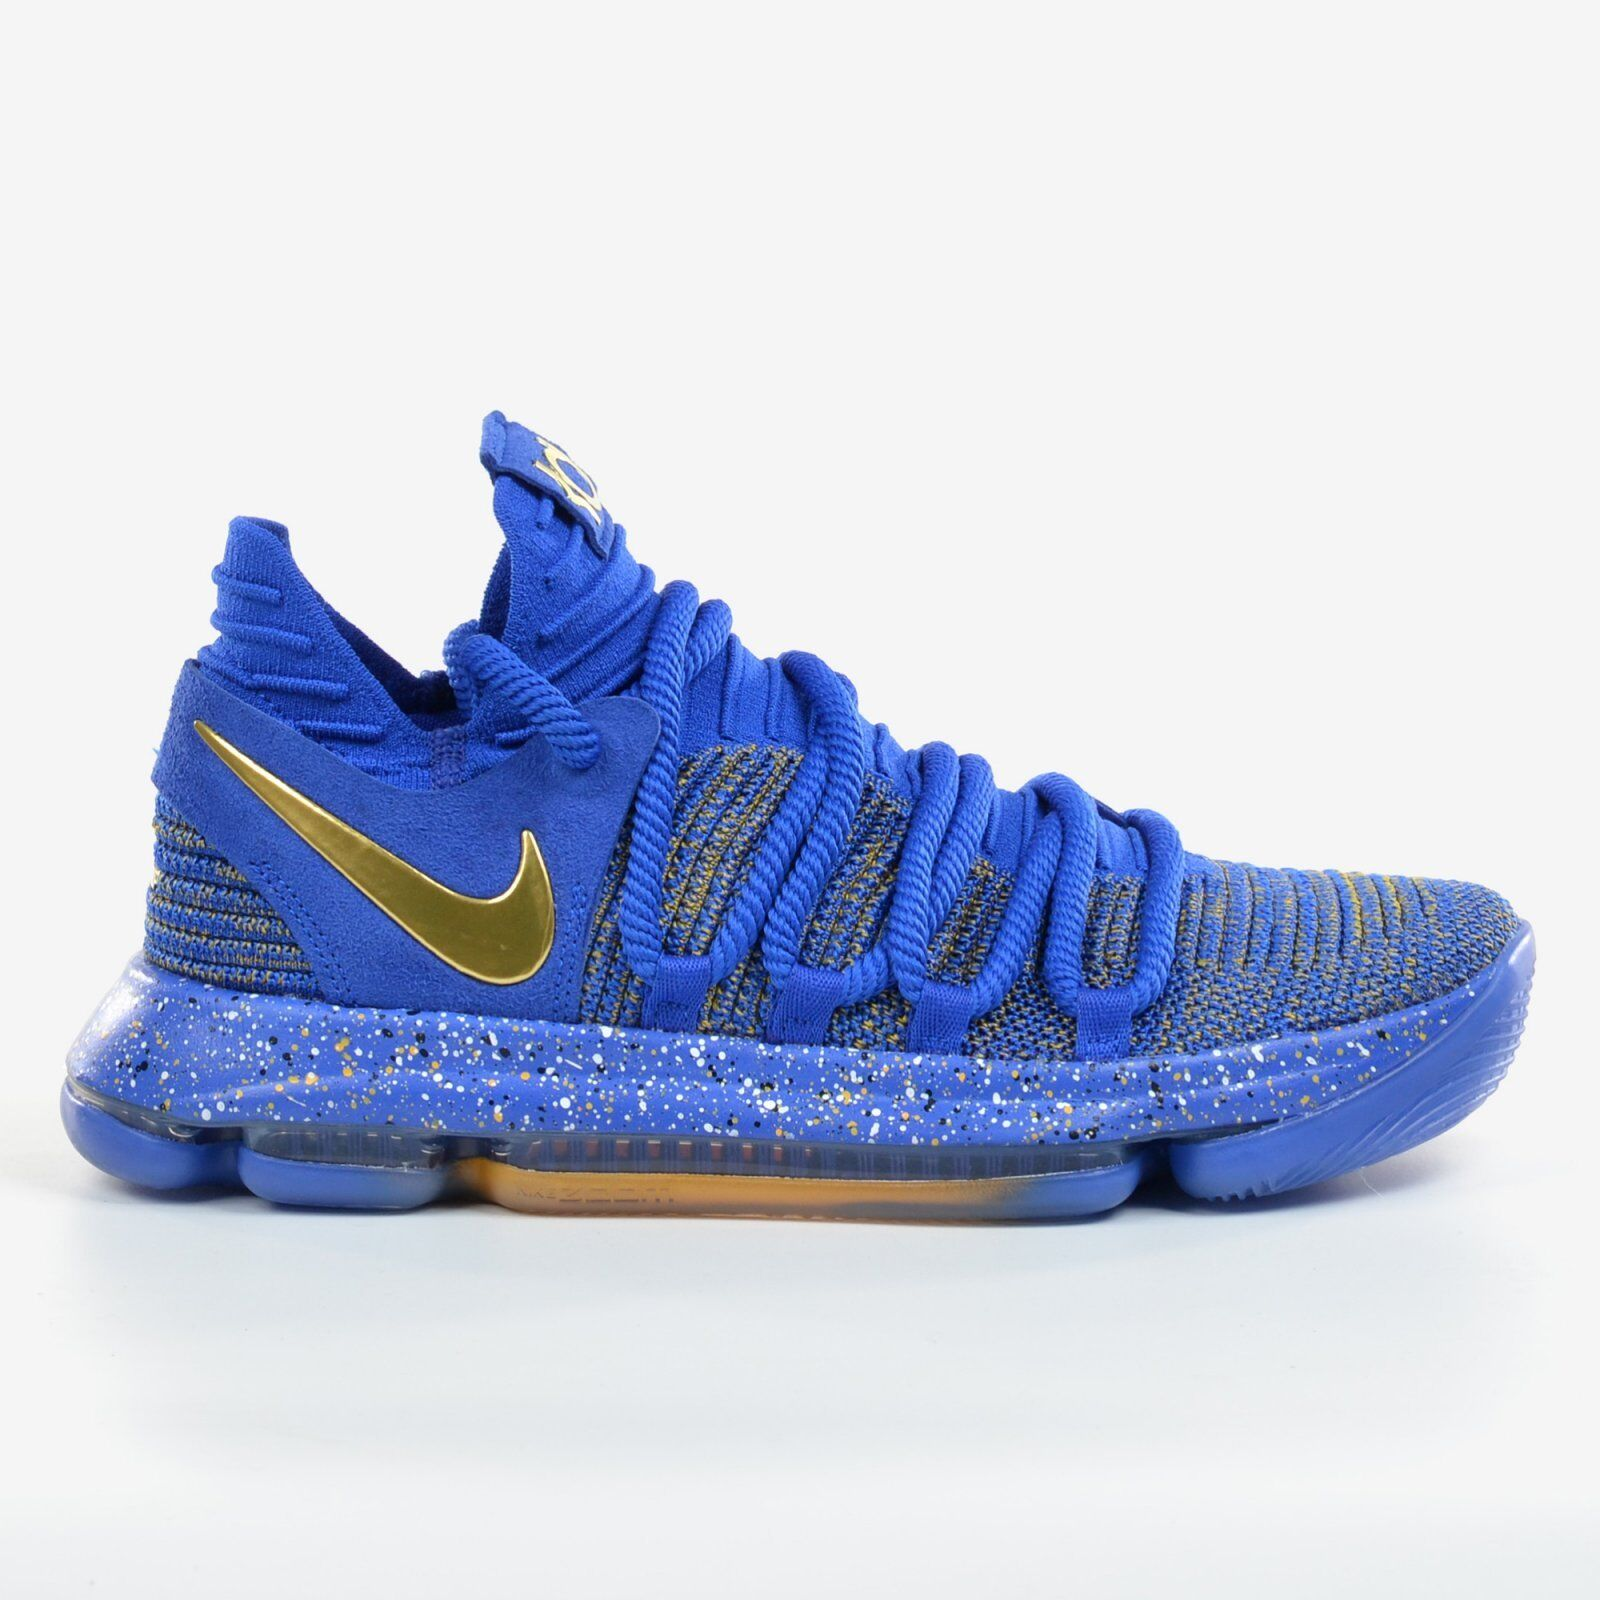 886020de4cd3 ... switzerland nike zoom kd 10 ep racer blue 2017 finals mvp metallic gold  fmvp x ds